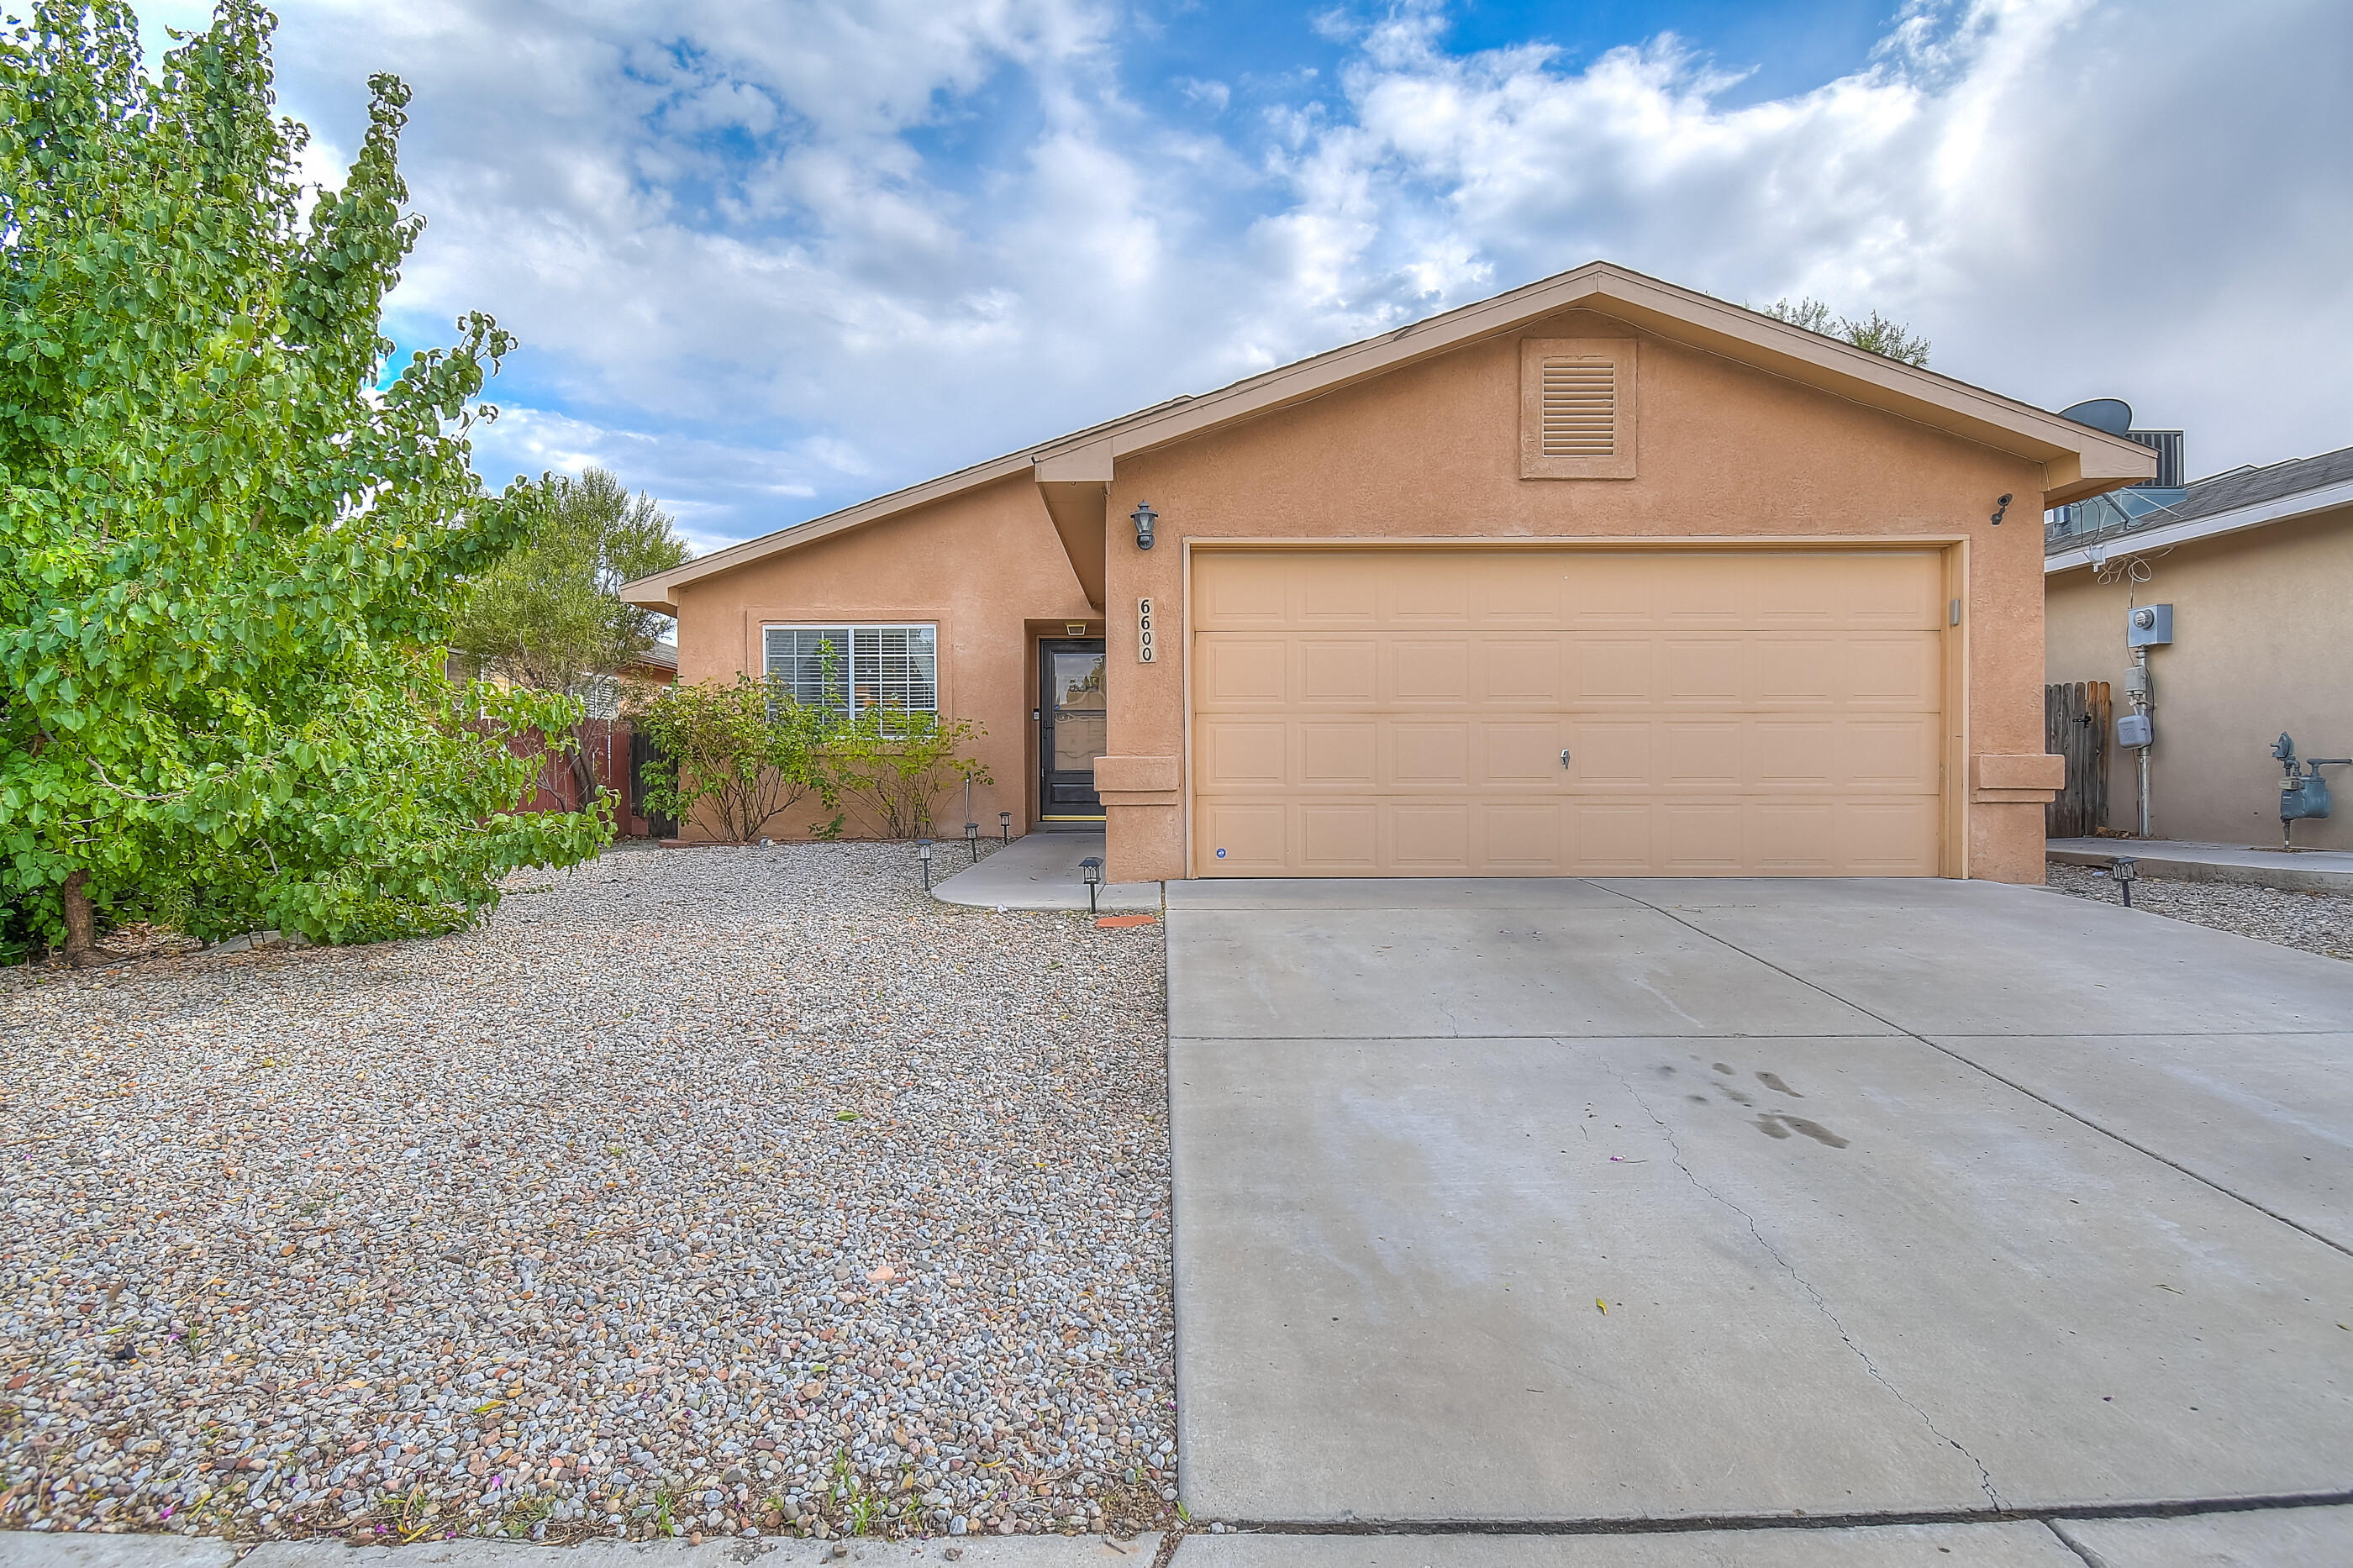 Location, location, location! Welcome home to this centrally located home near plenty of shopping and restaurants, easy access to freeways, minutes away from downtown / old town area. This open floor plan gives you the opportunity to stay connected whether you're in the dining, kitchen or living area.  Plenty of space in the master bedroom with separate washroom, double vanity and walk in closet. Backyard with grass and patio.  Water heater installed 2018, newer garage door opener, backyard grass with sprinkler system, and deep tub sink in kitchen.  Come see this Home today!